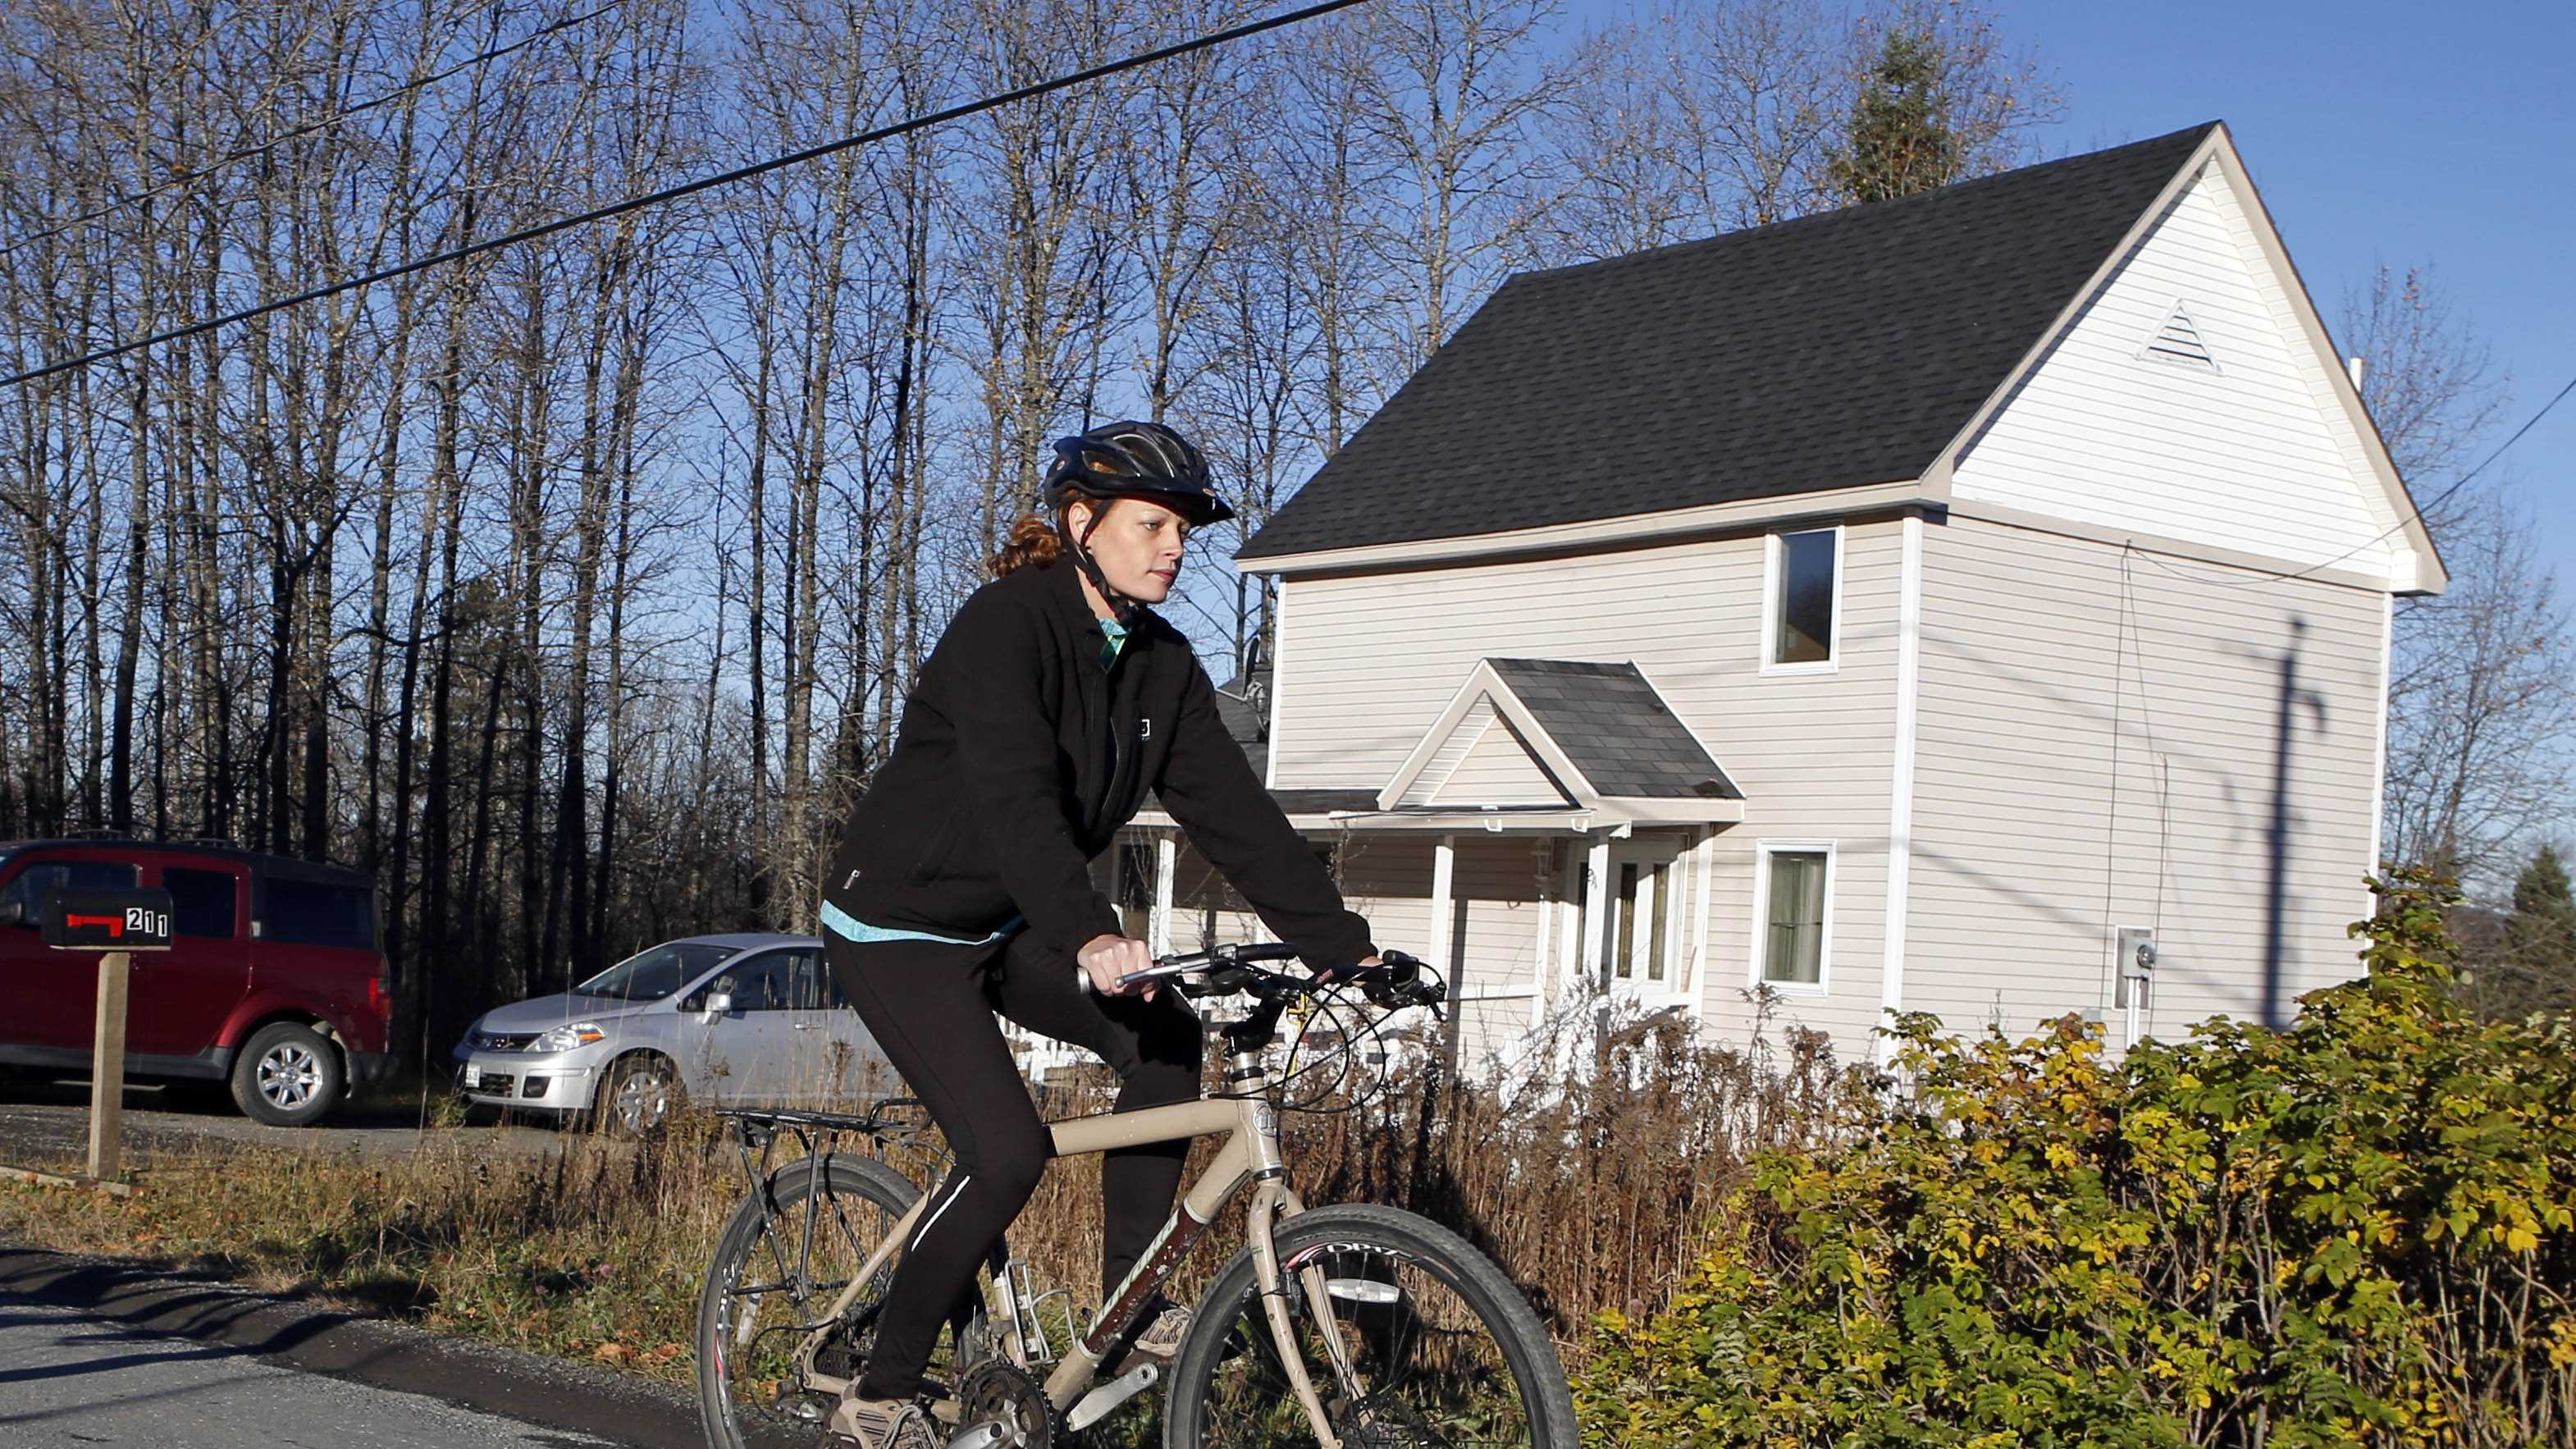 Nurse Kaci Hickox rides away from the home she is staying in on a rural road in Fort Kent, Maine, to take a bike ride, Thursday, Oct. 30, 2014. Hickox went on an hour-long ride with her boyfriend Ted Wilbur, followed by state police who were monitoring her movements and public interactions.